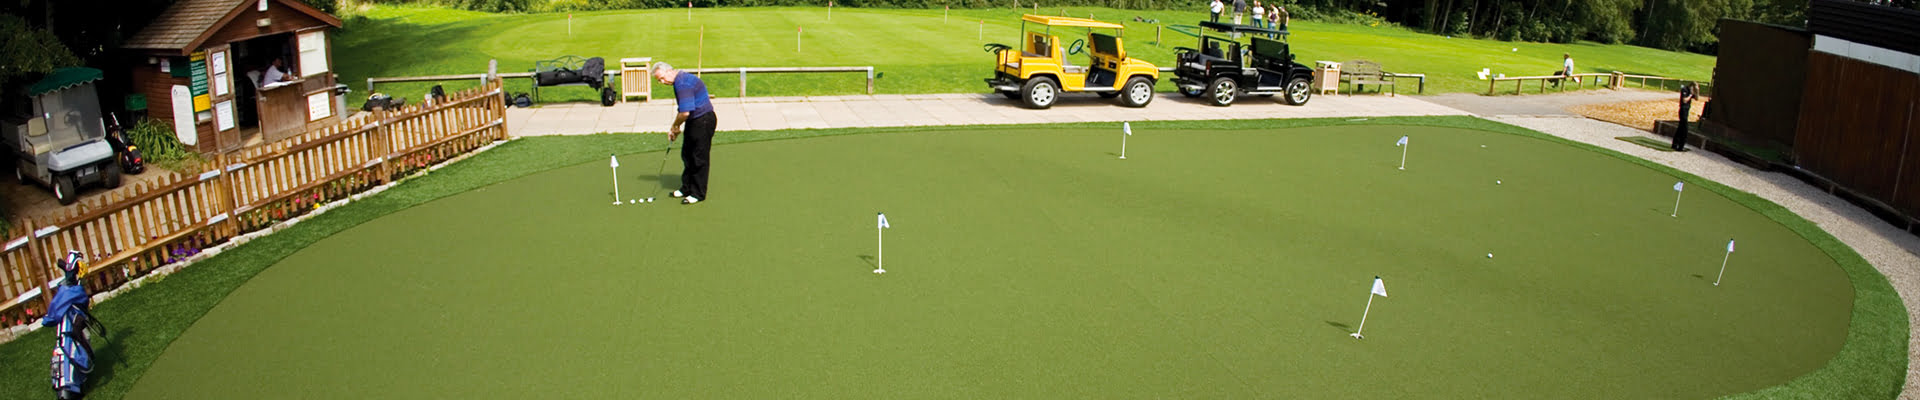 Short game putting green